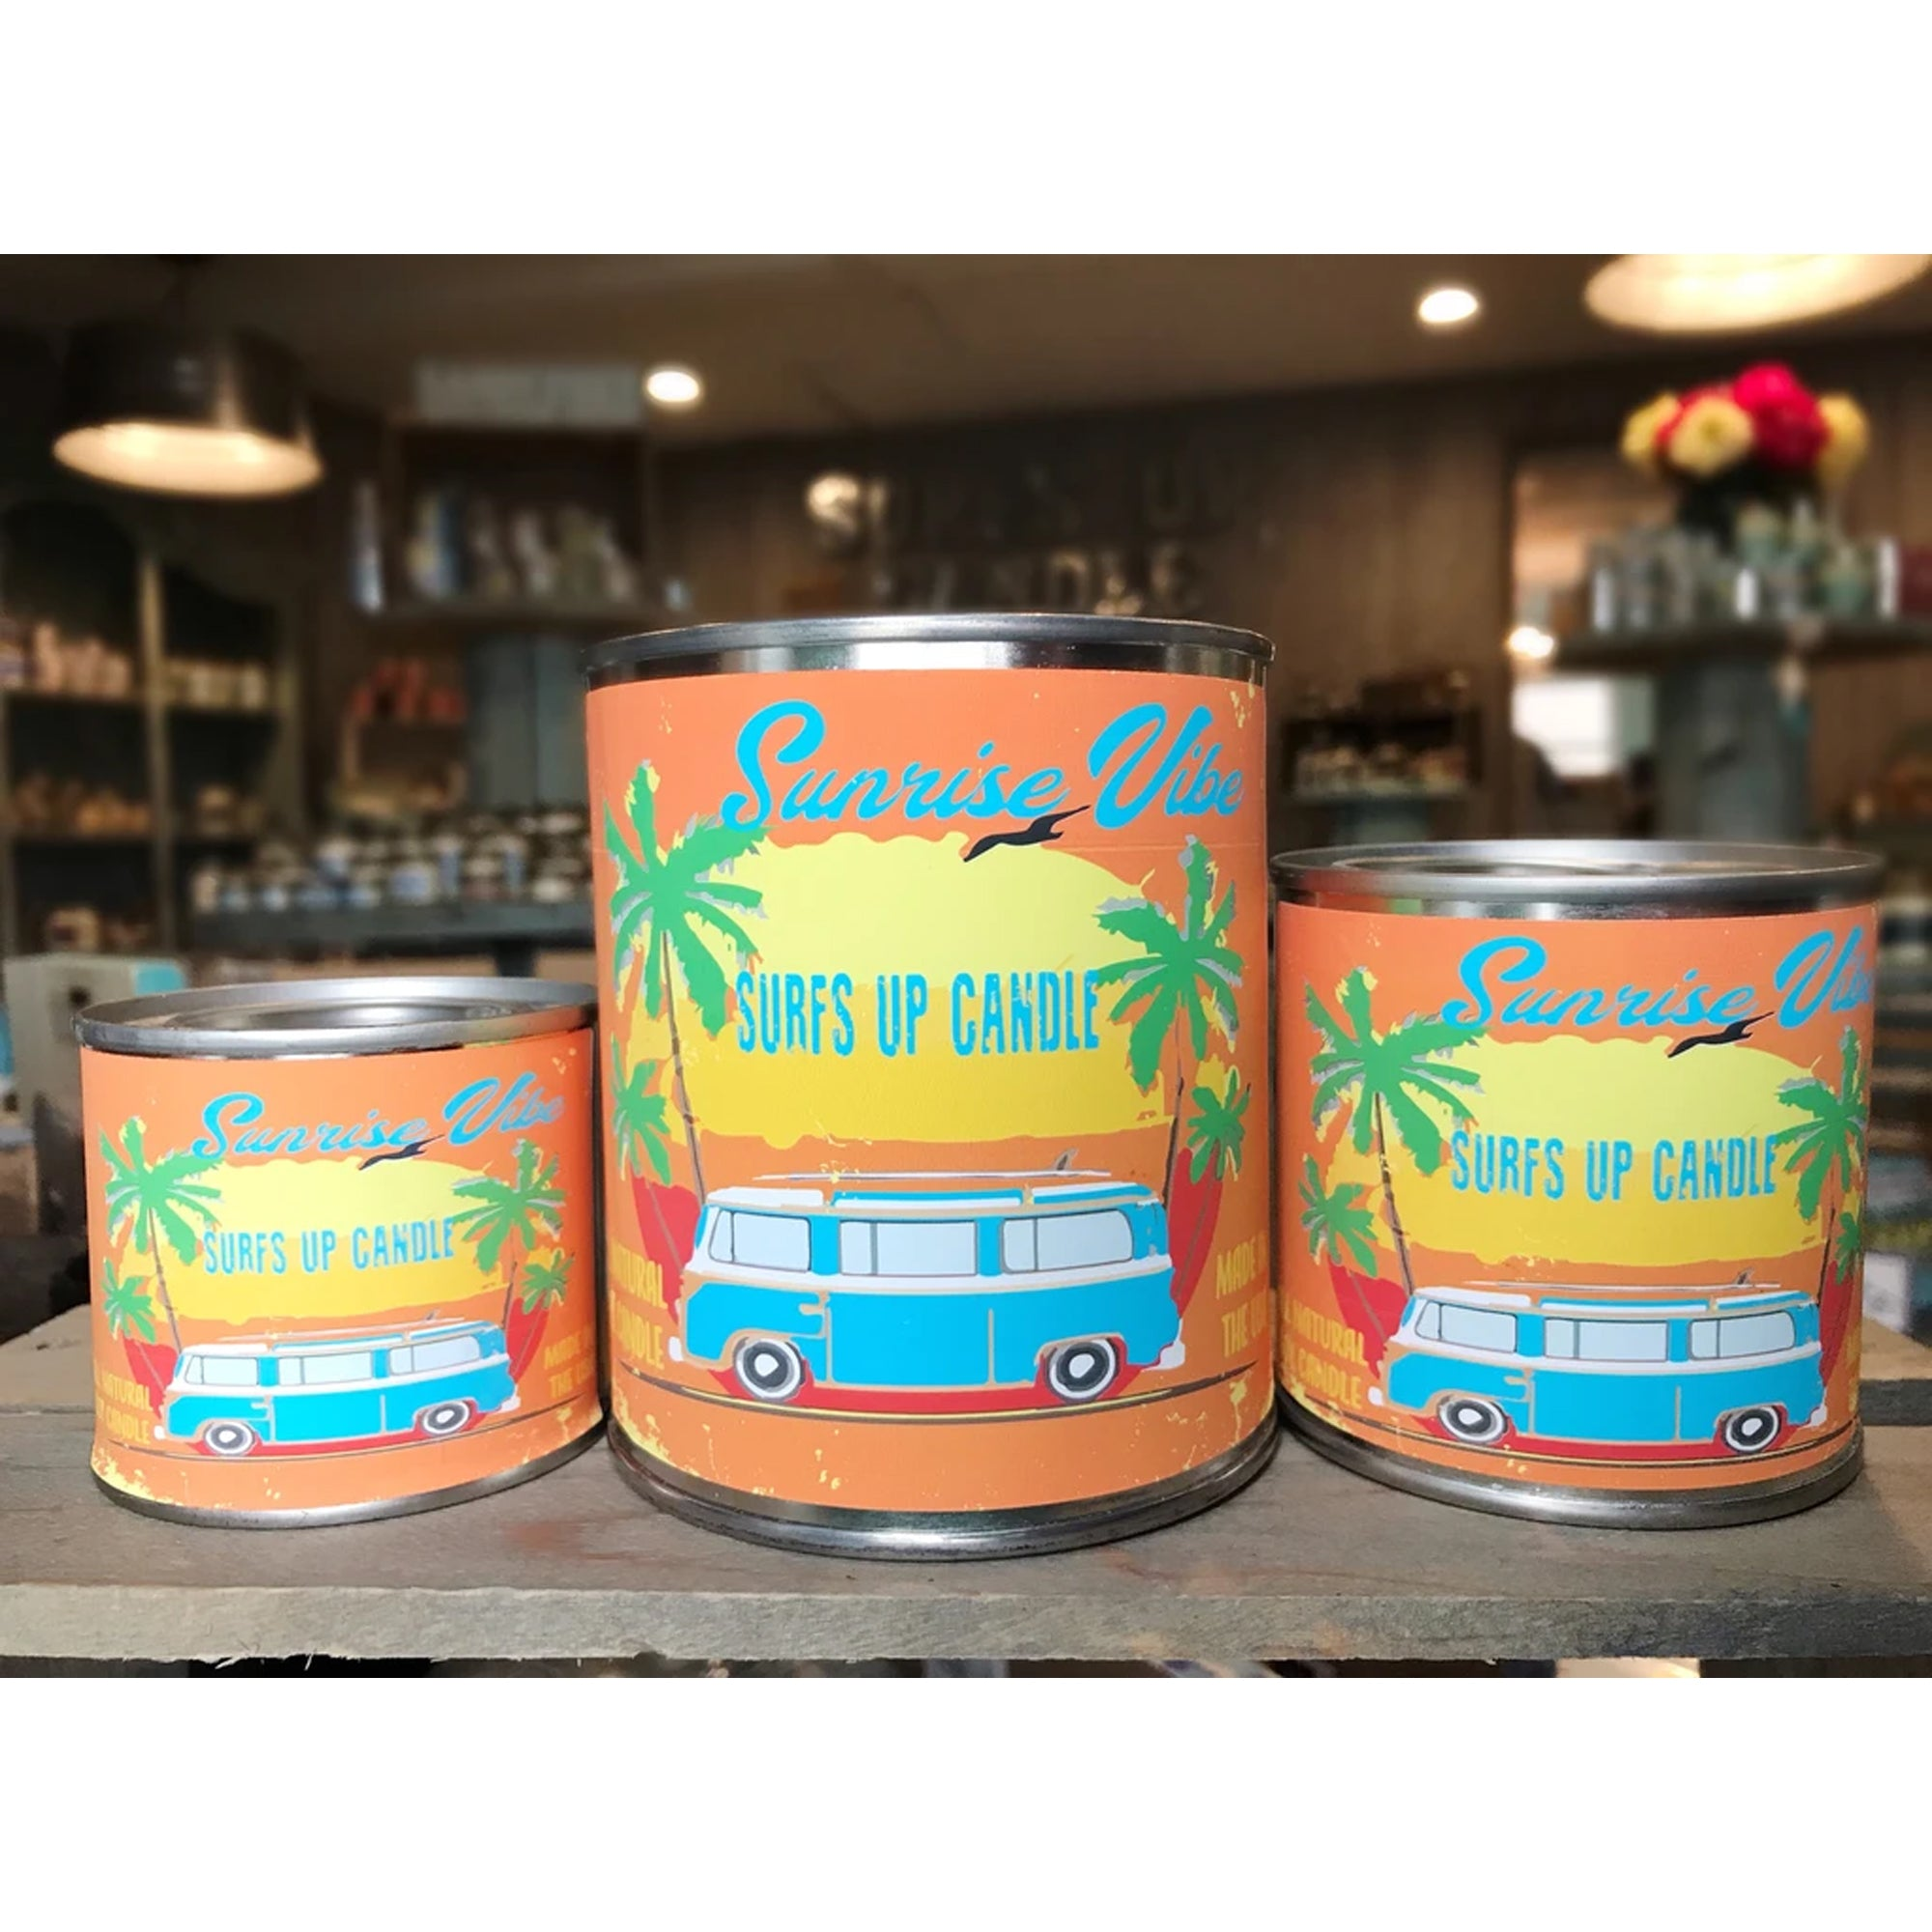 Surf's Up Paint Can Soy Candle - Sunrise Vibe